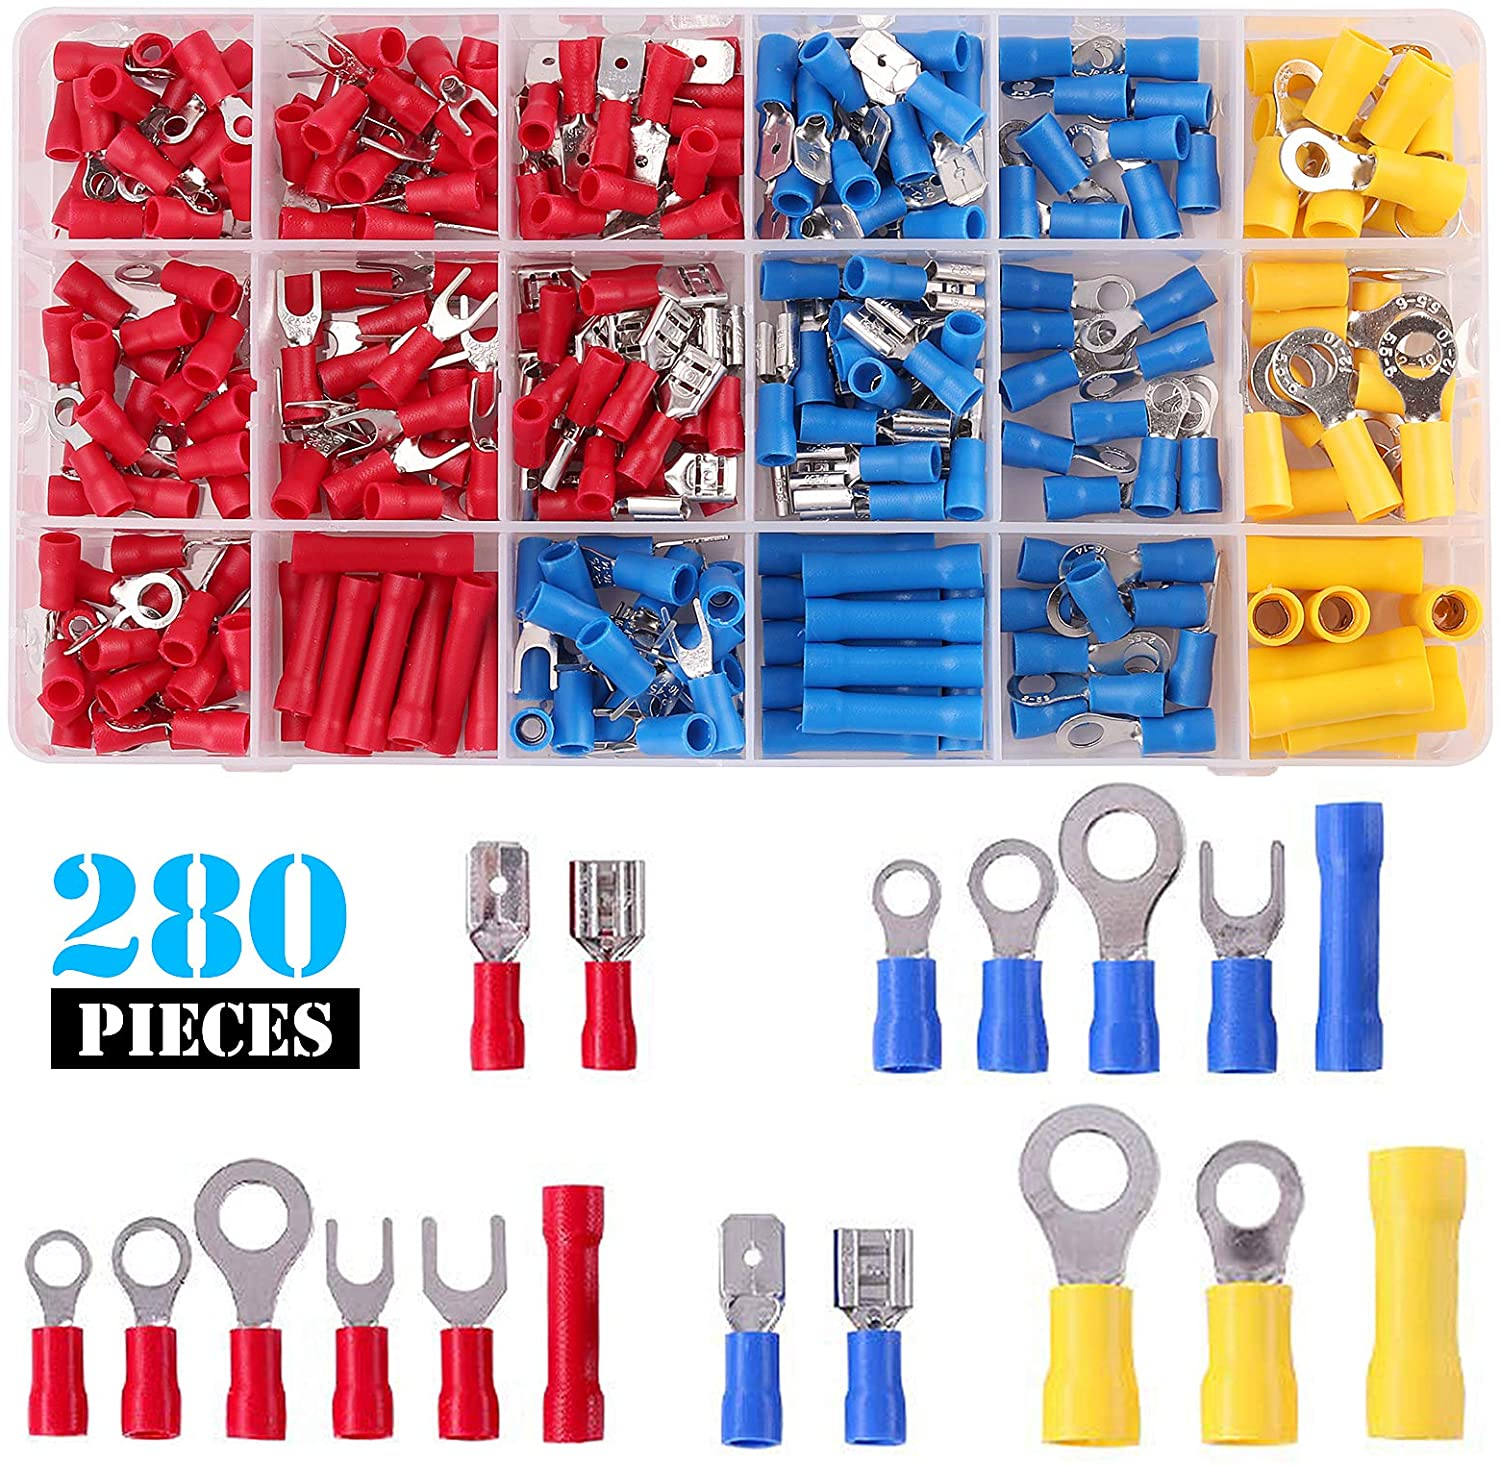 Kinstecks 280PCS Electrical Wire Connectors Insulated Wire Crimp Terminals Ring Fork Spade Butt Connector Set Mixed Assortment Kit for Automotive Car Motorcycle Boats Electric Instruments